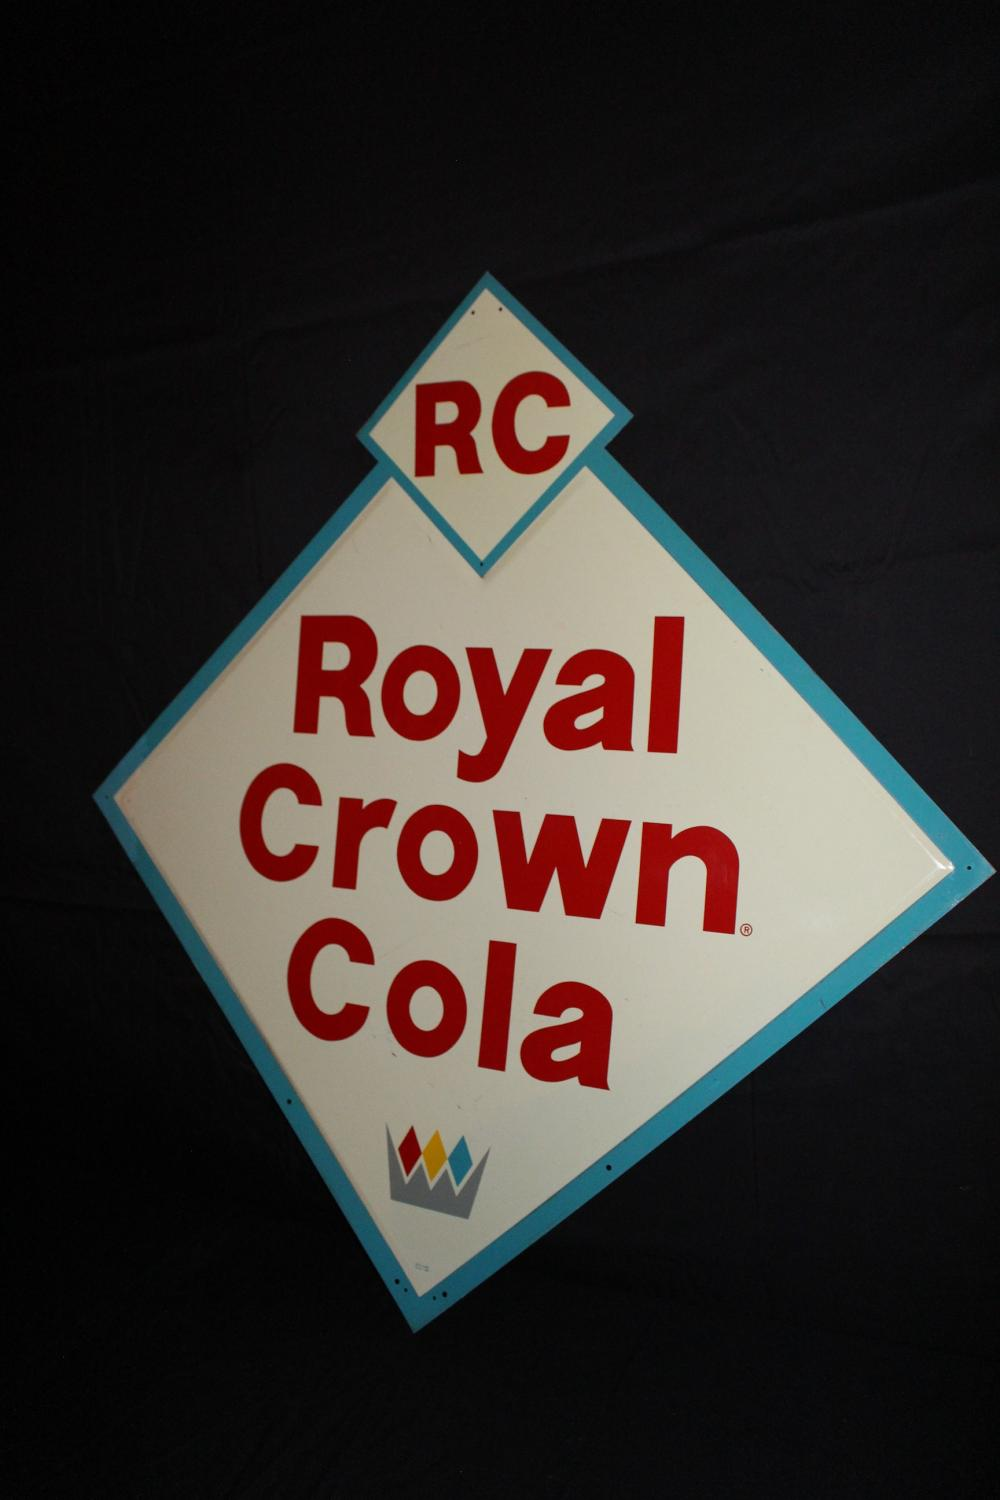 LARGE RC ROYAL CROWN COLA SIGN